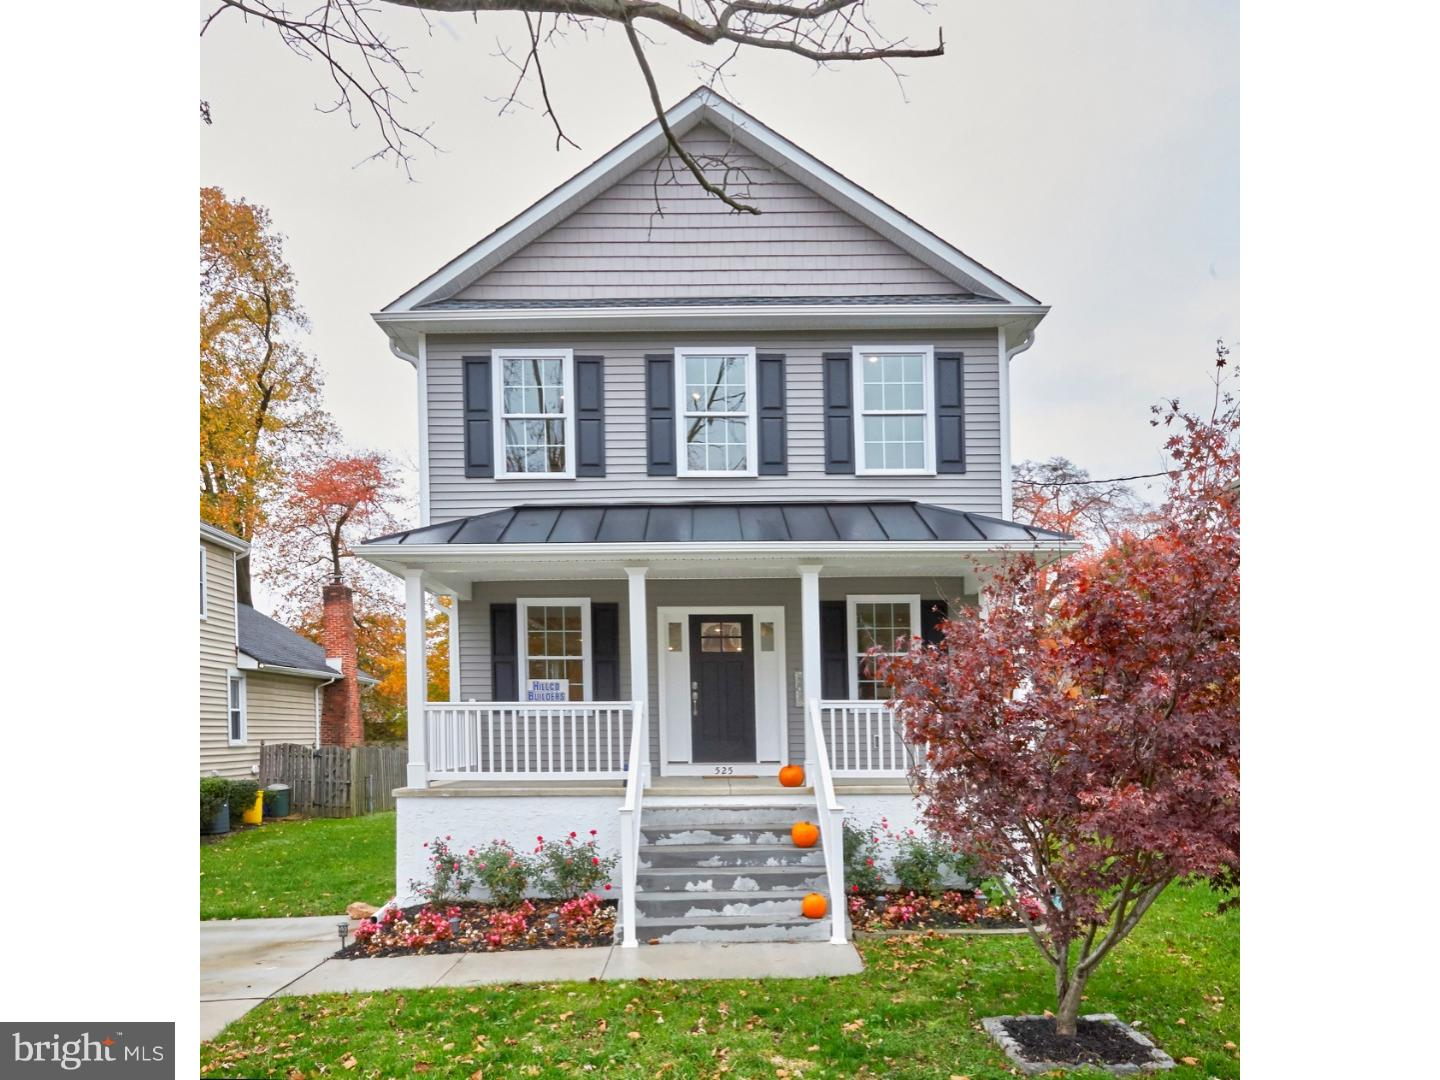 Single Family Home for Sale at 525 W GRAISBURY Avenue Audubon, New Jersey 08106 United States